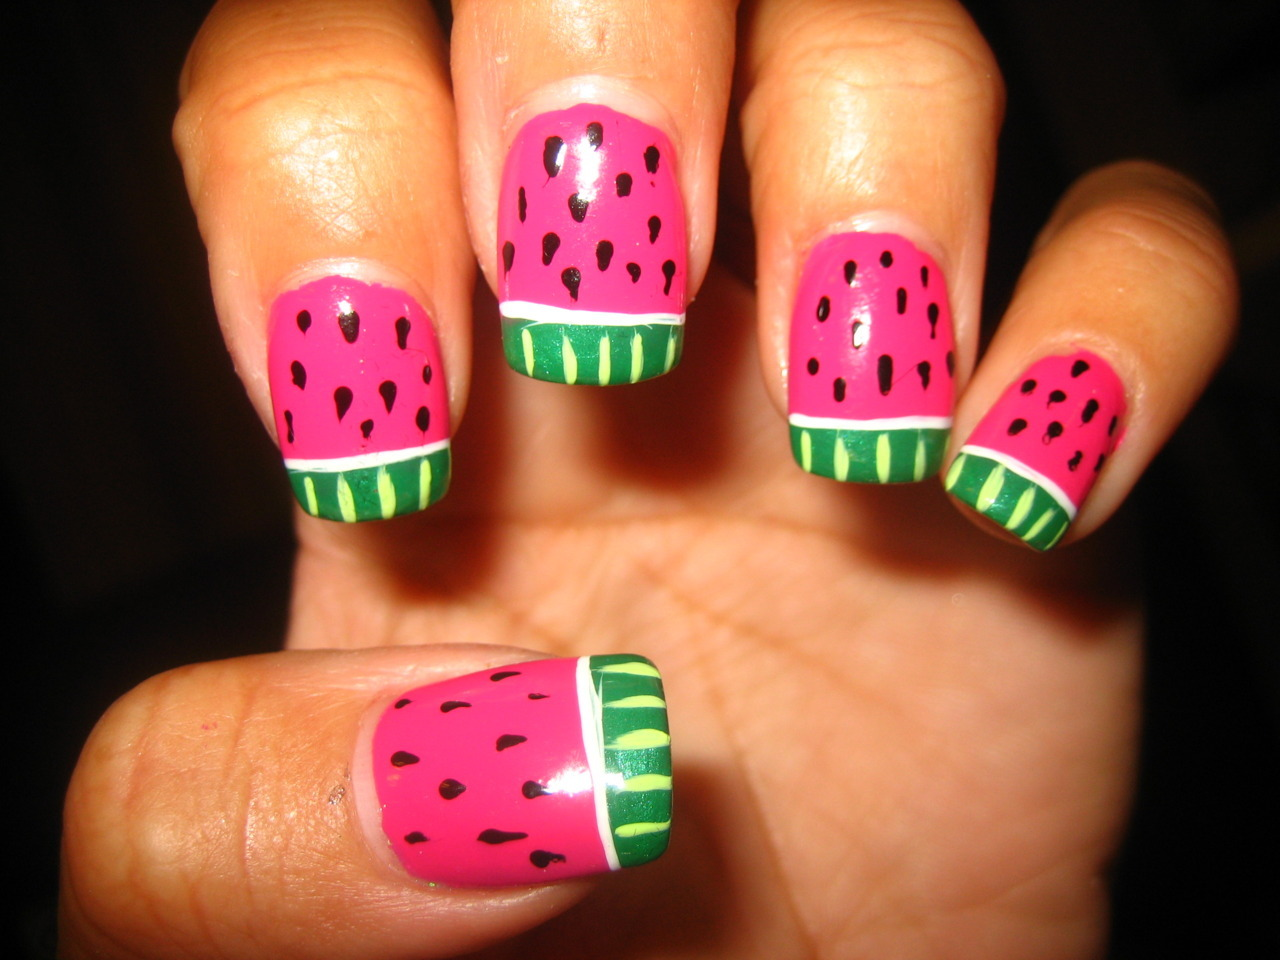 my watermellon nails love them!